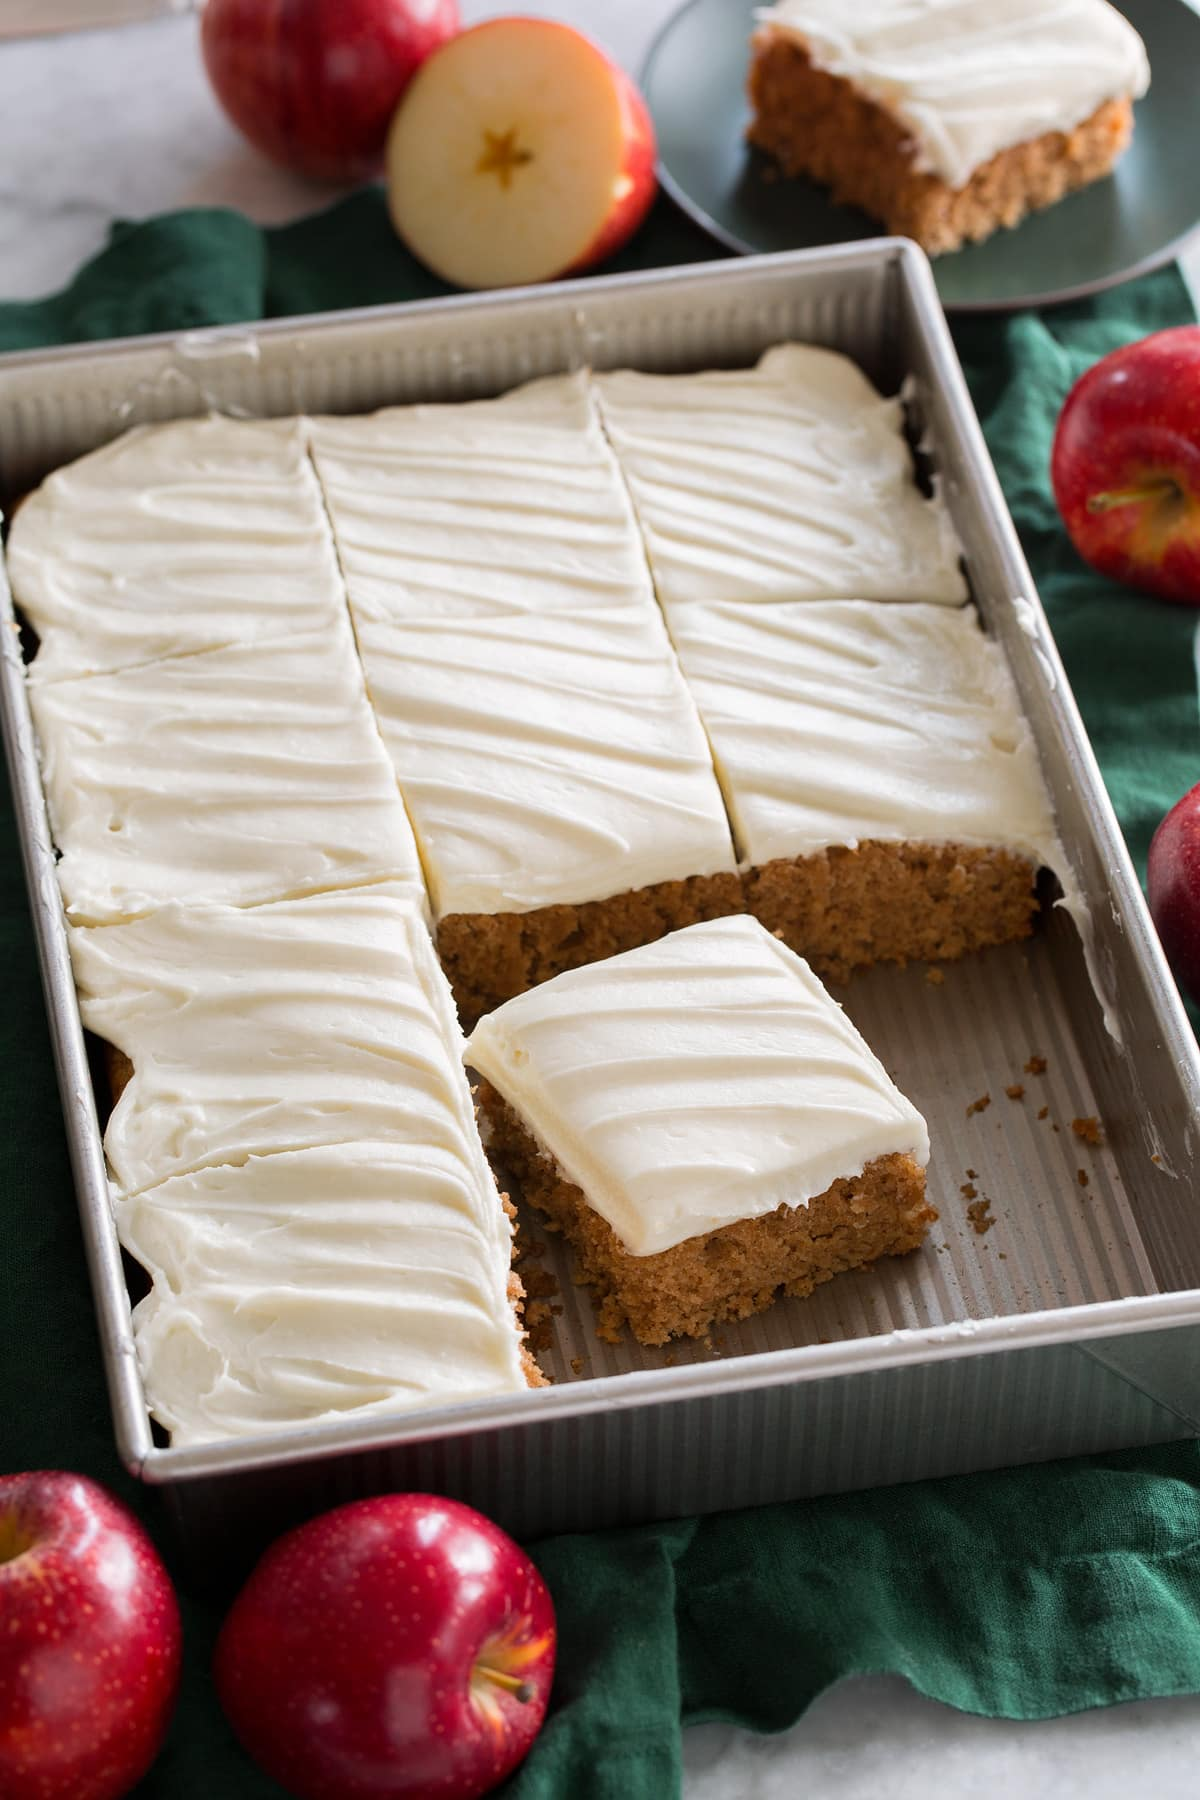 Applesauce cake topped with cream cheese frosting shown in a metal baking sheet over a green cloth.